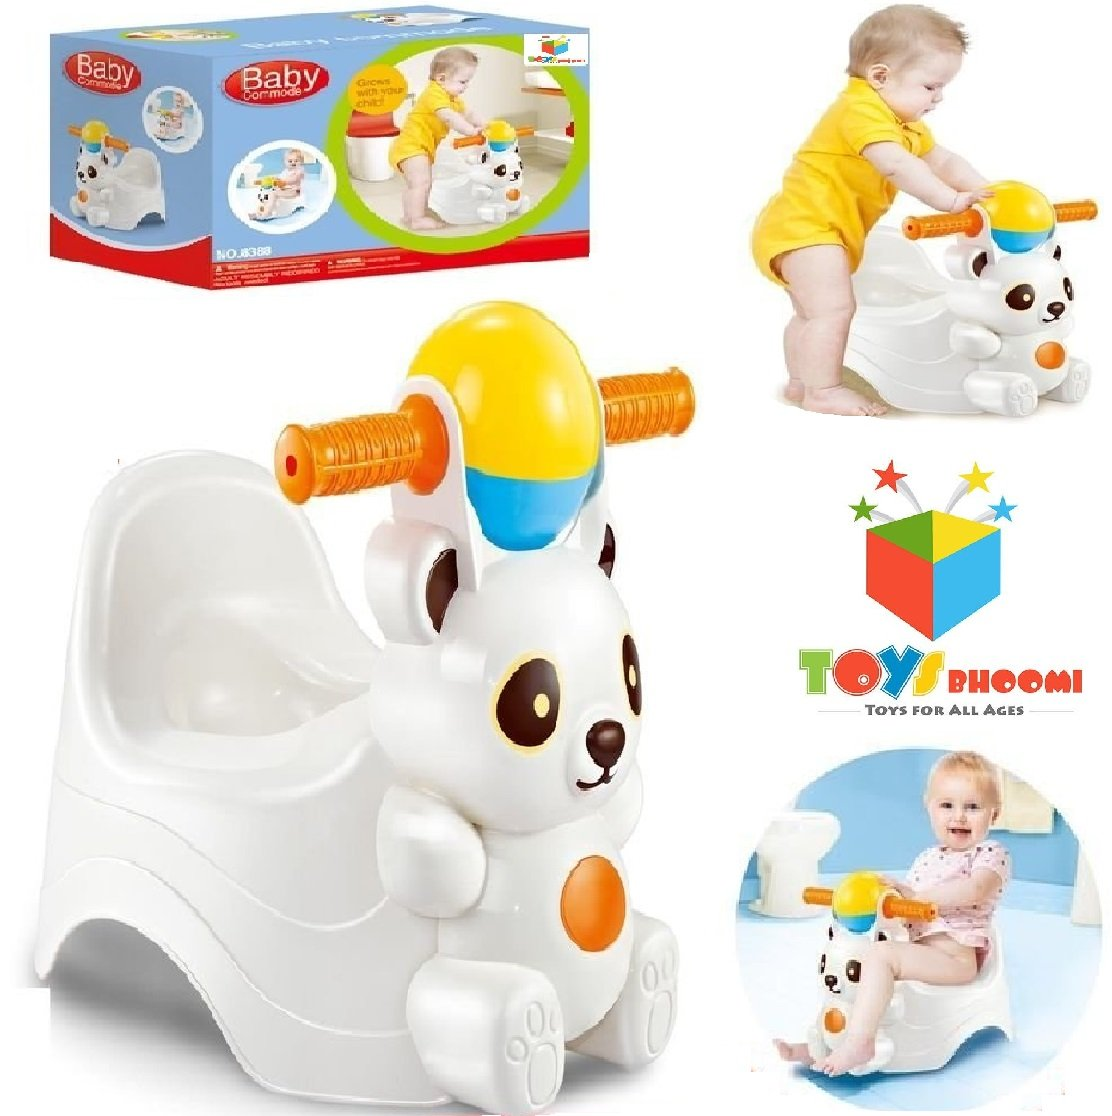 Toys Bhoomi Little Baby Panda Style Infant Potty Training Loo Commode Potty Seat